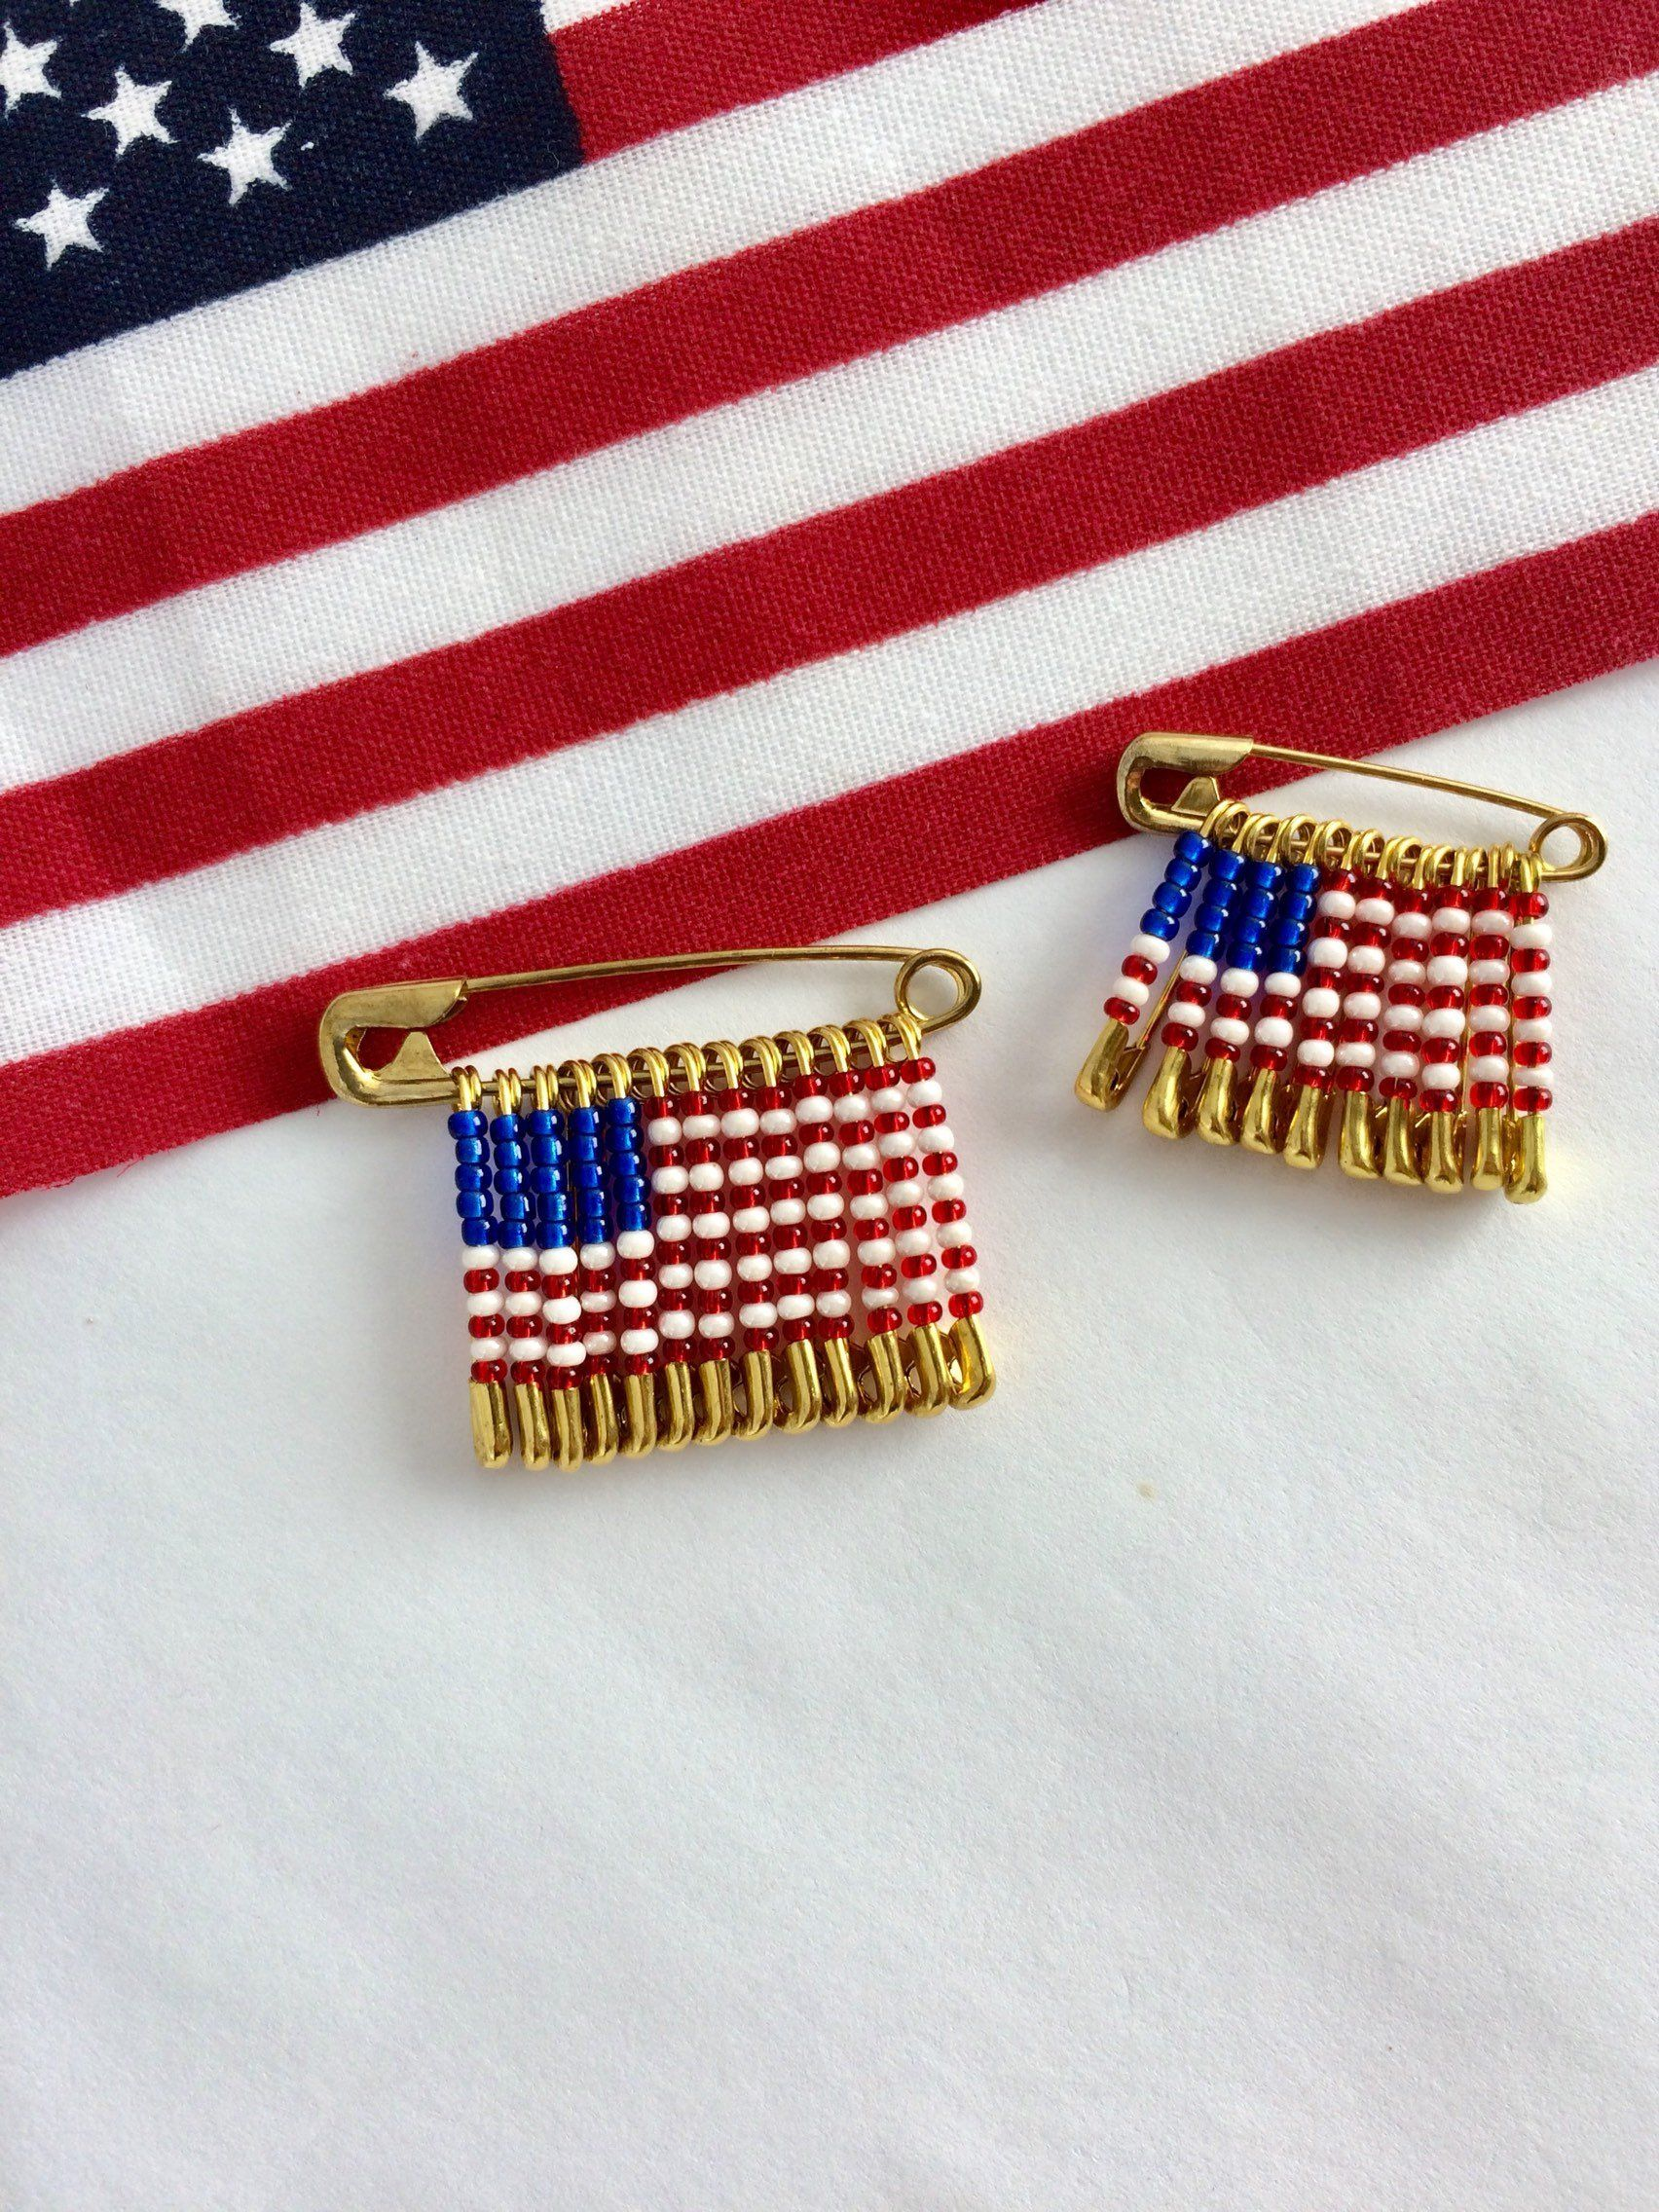 USA Flag Handmade Beaded Pin Brooch Safety Birthday Gift Veterans Day For Her Labor By FlagPinsbyAnnette On Etsy